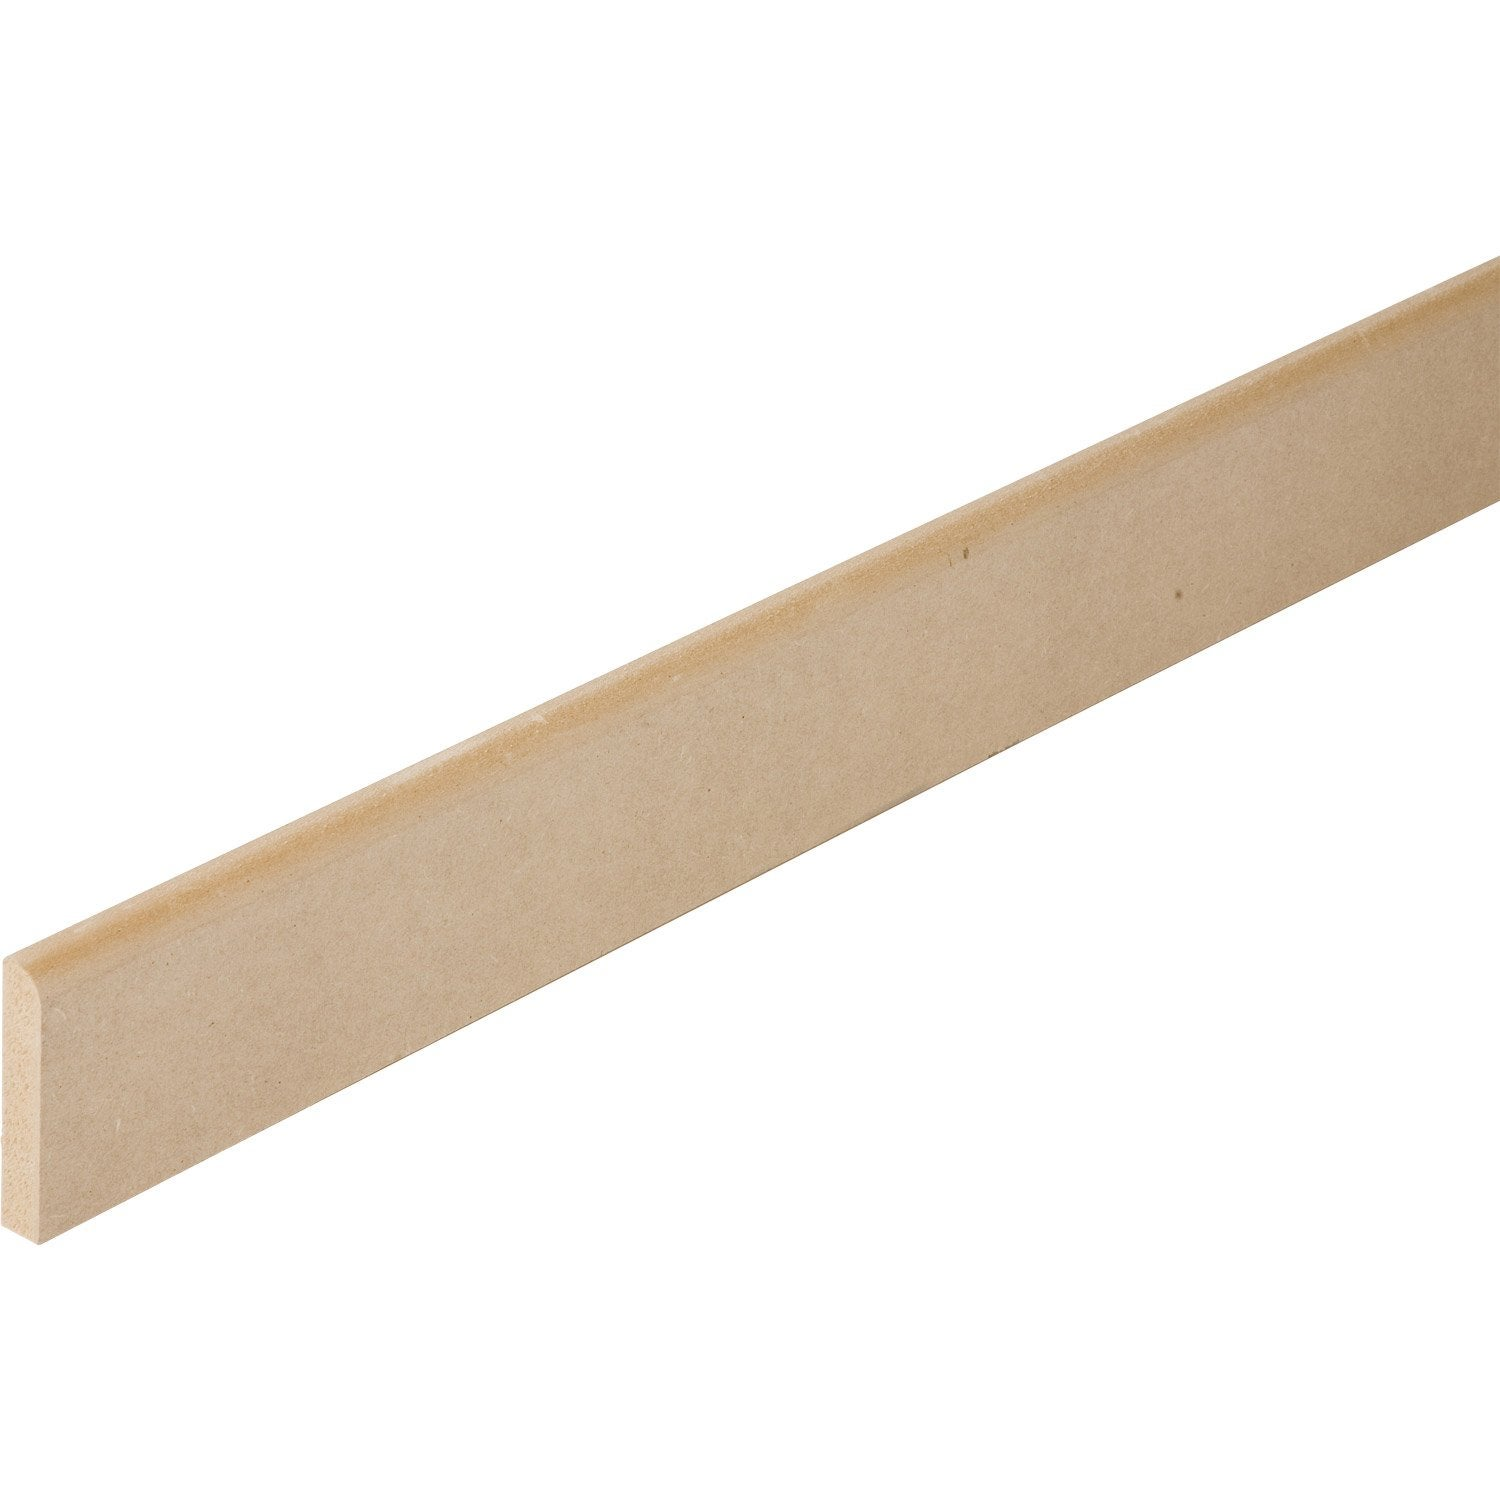 Plinthe m dium mdf r versible 12 x 70 mm l m for Plinthe en medium a peindre